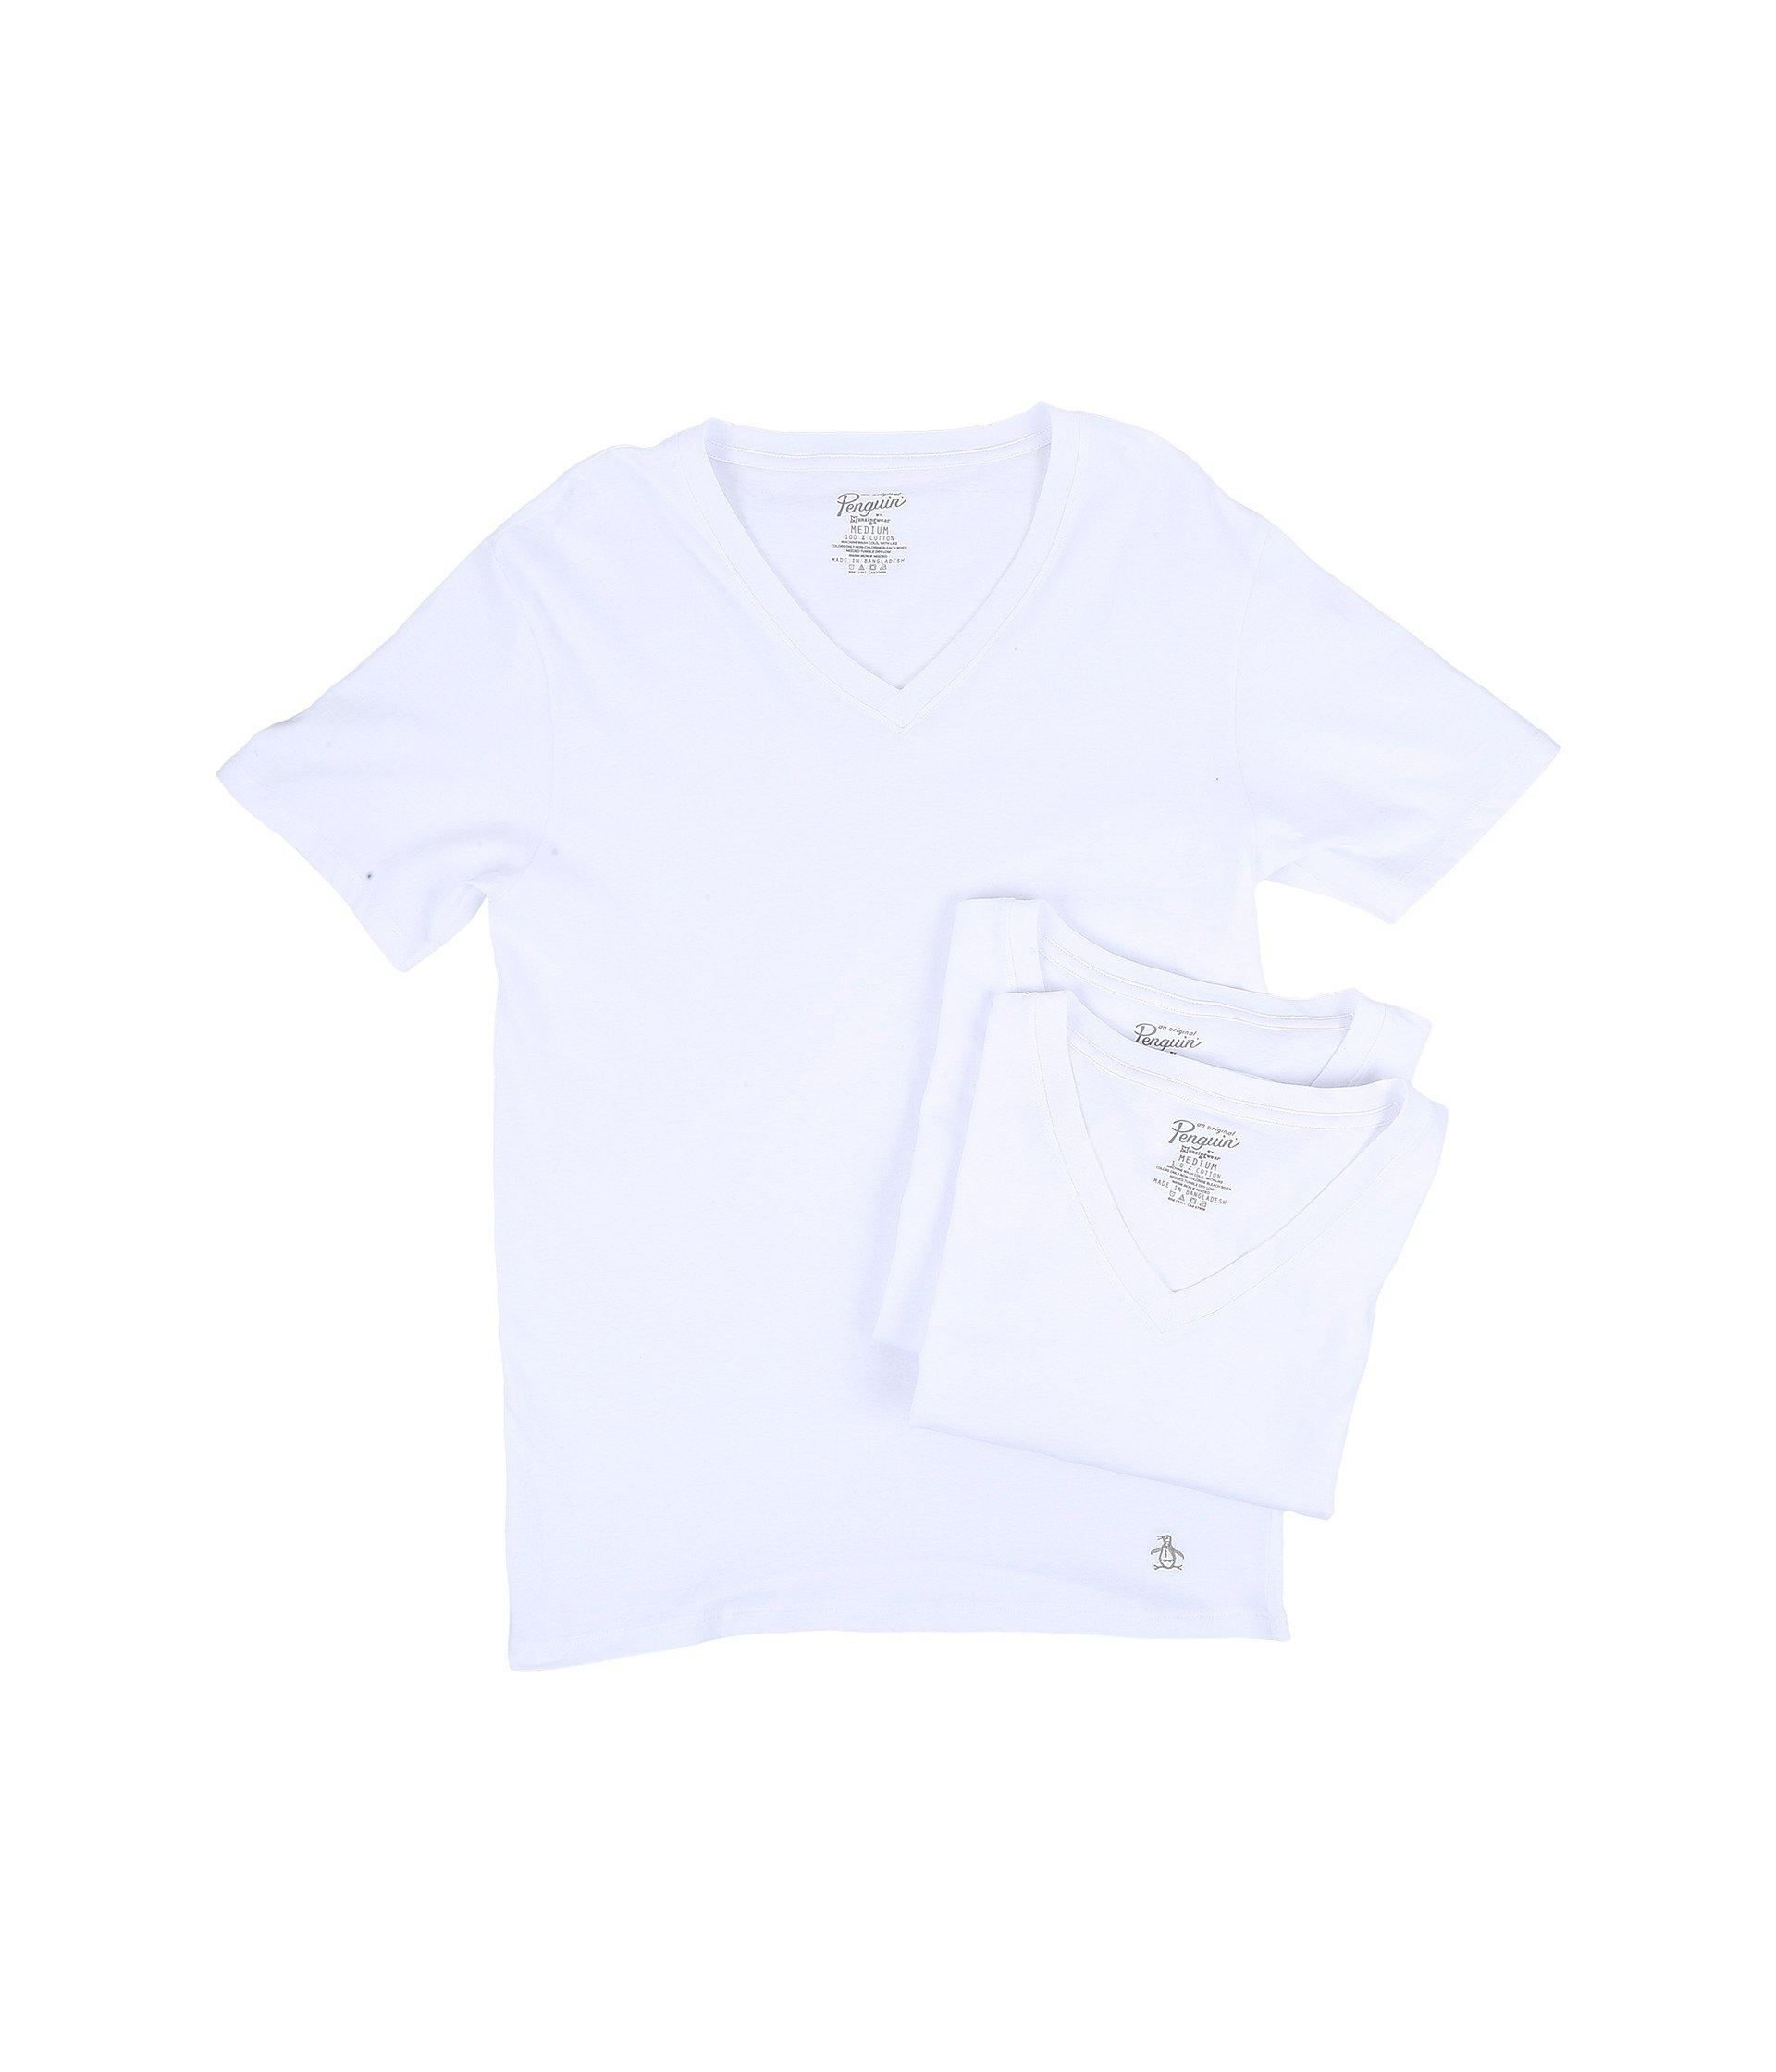 e37c30bb Original Penguin - White Slim Fit 3-pack V-neck T-shirt for. View fullscreen